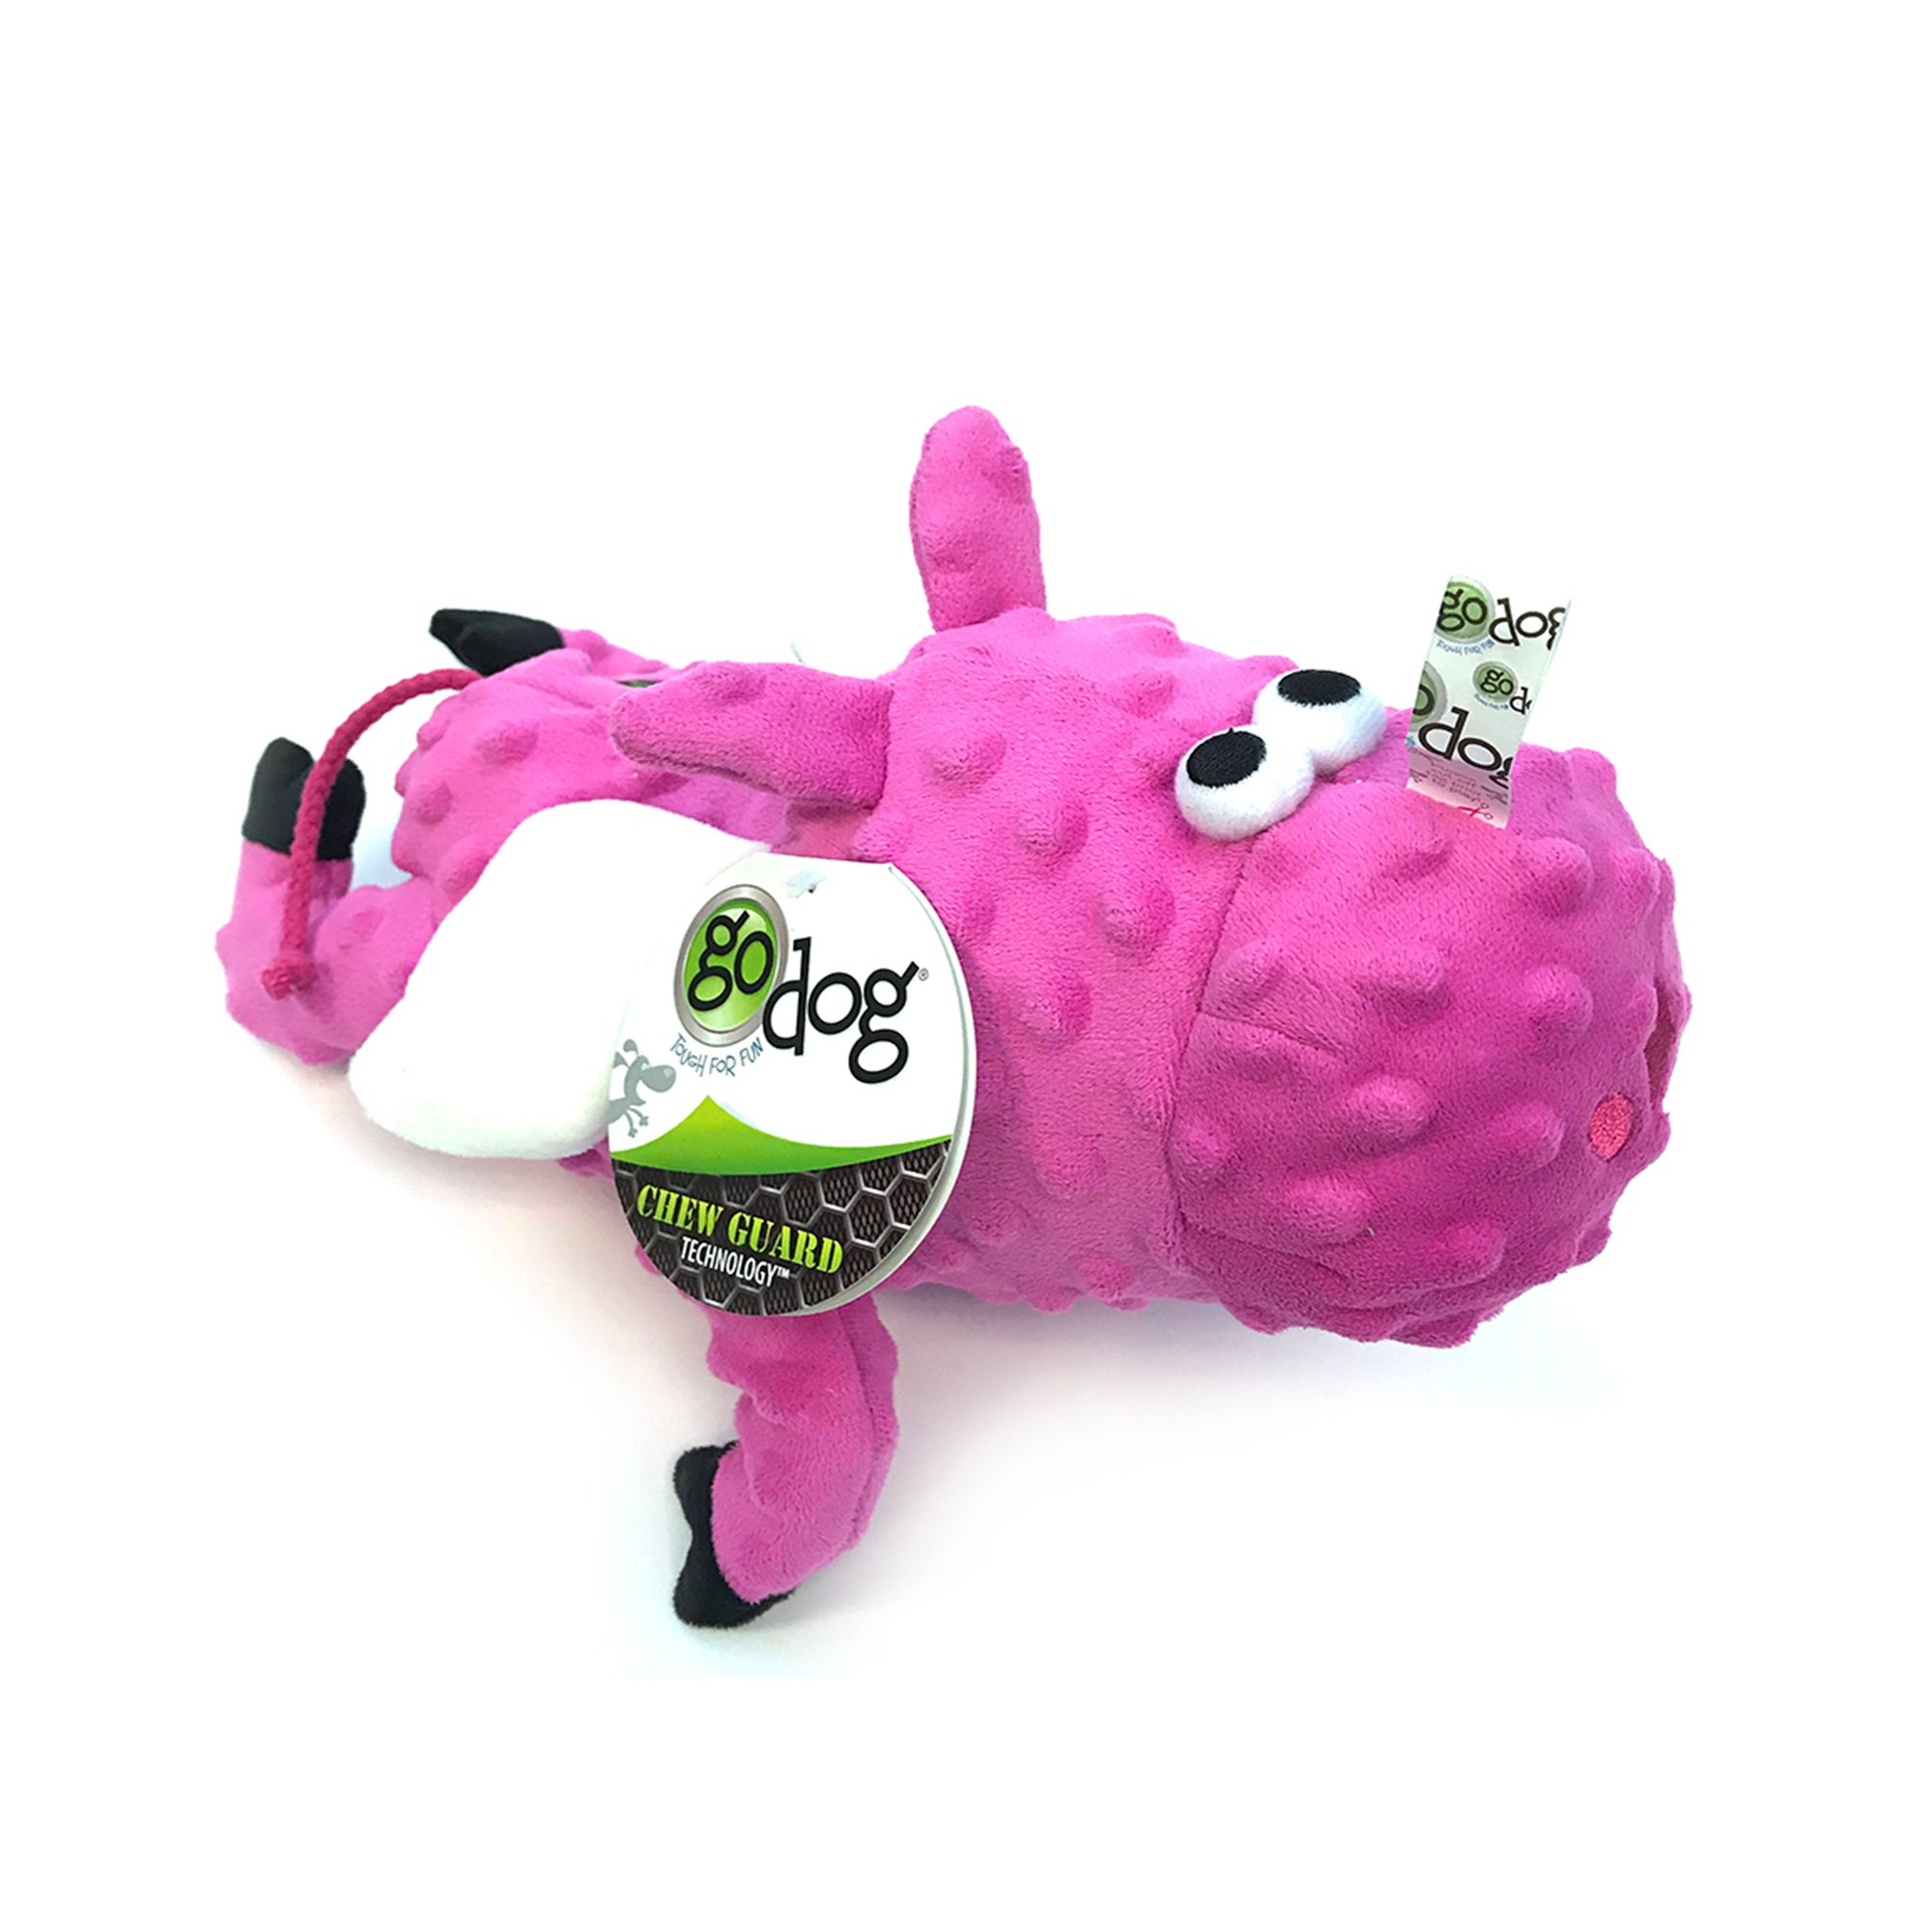 Godog Flying Pink Pig With Bubble Plush Toy Petco